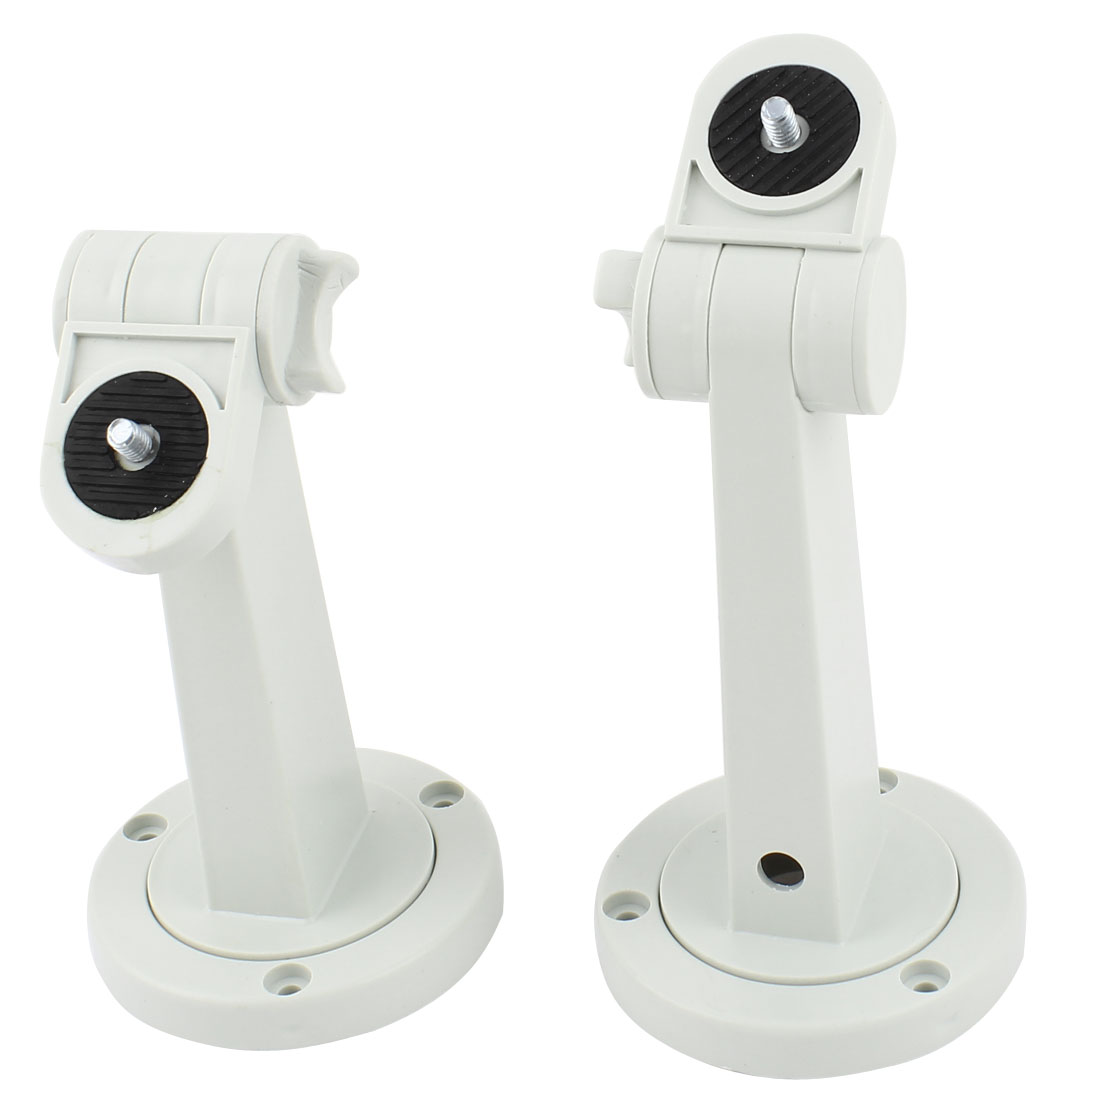 2 Pcs White Plastic Round Base Wall Mount Monitor CCTV Camera Bracket